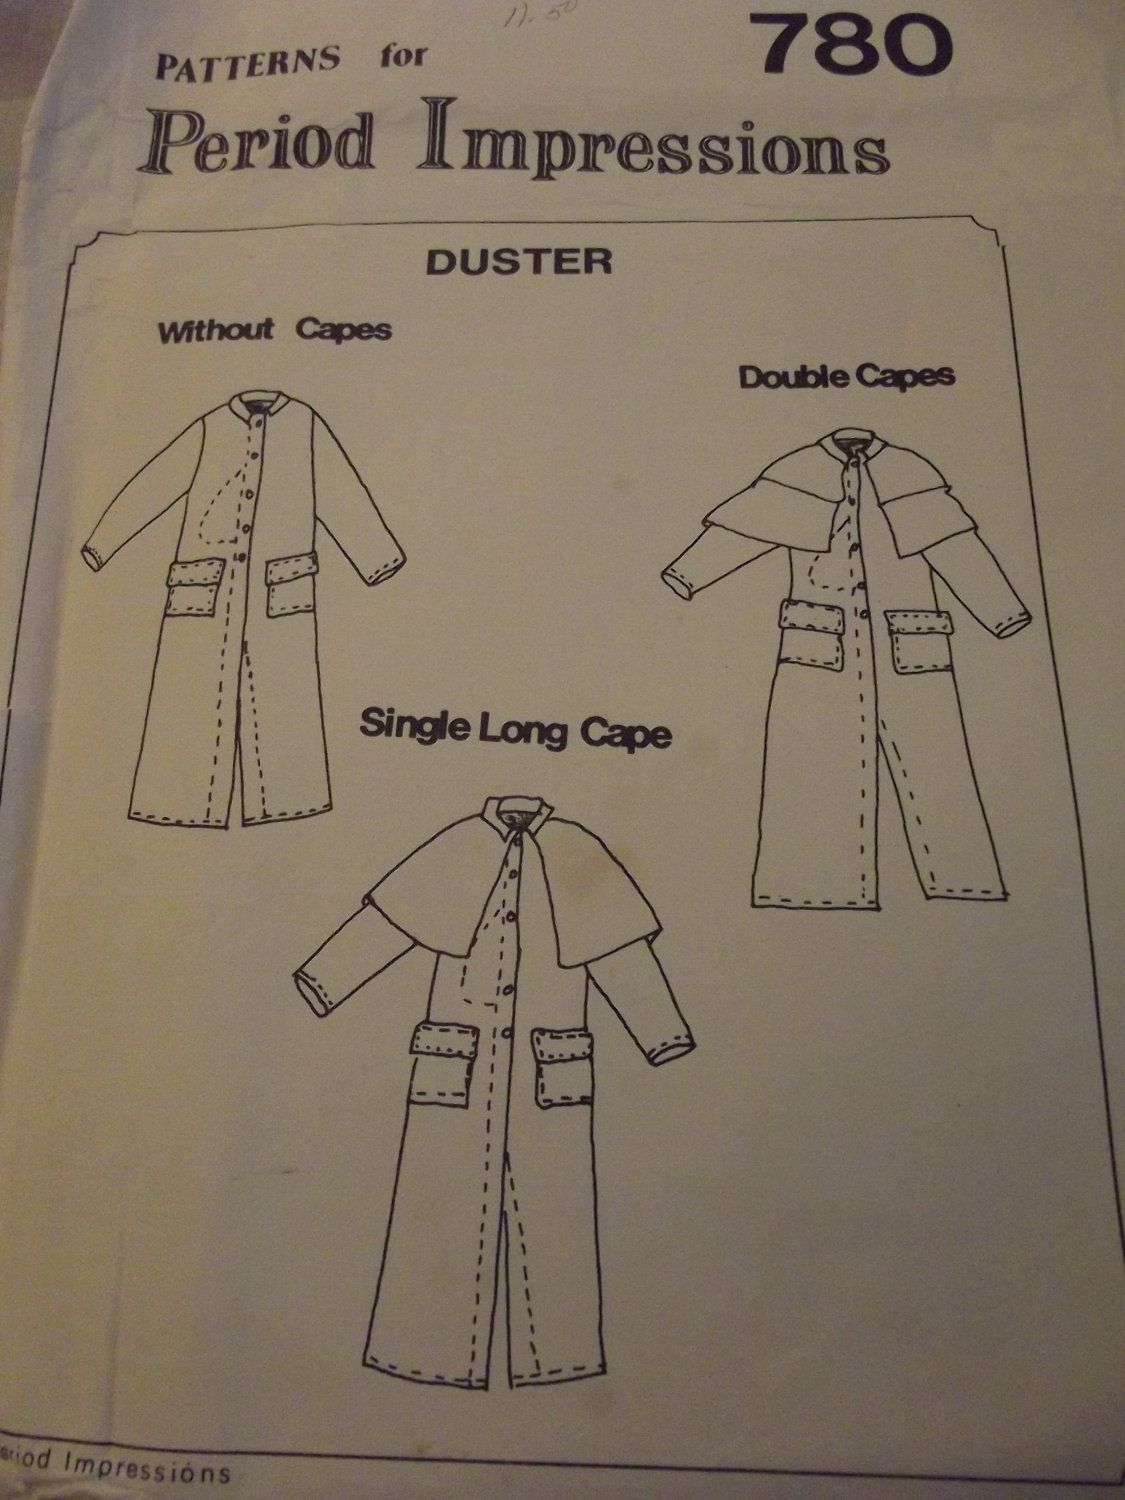 Mens Duster Coat Pattern | ש"|1125|1500|?|6b2e41eac4bce183bcbc7aa7caabcabb|False|UNLIKELY|0.37775570154190063